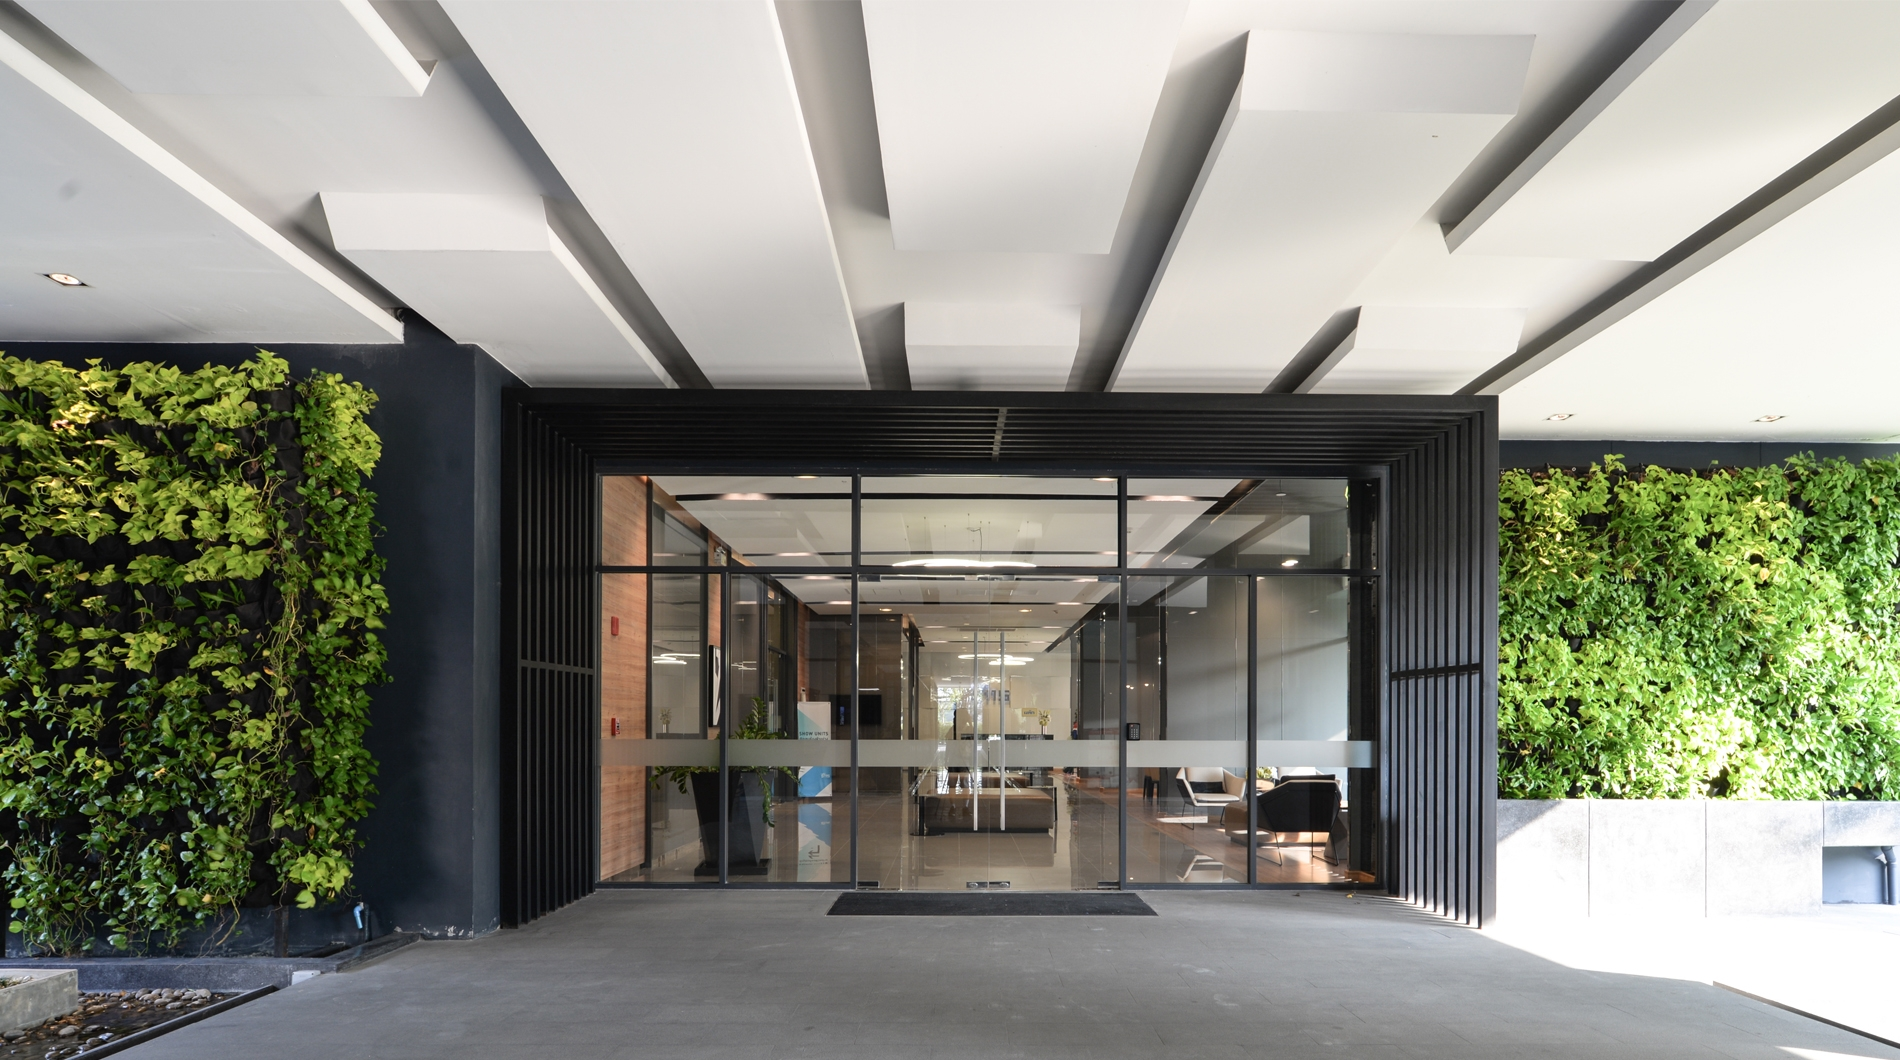 IDEO 素坤逸路 115